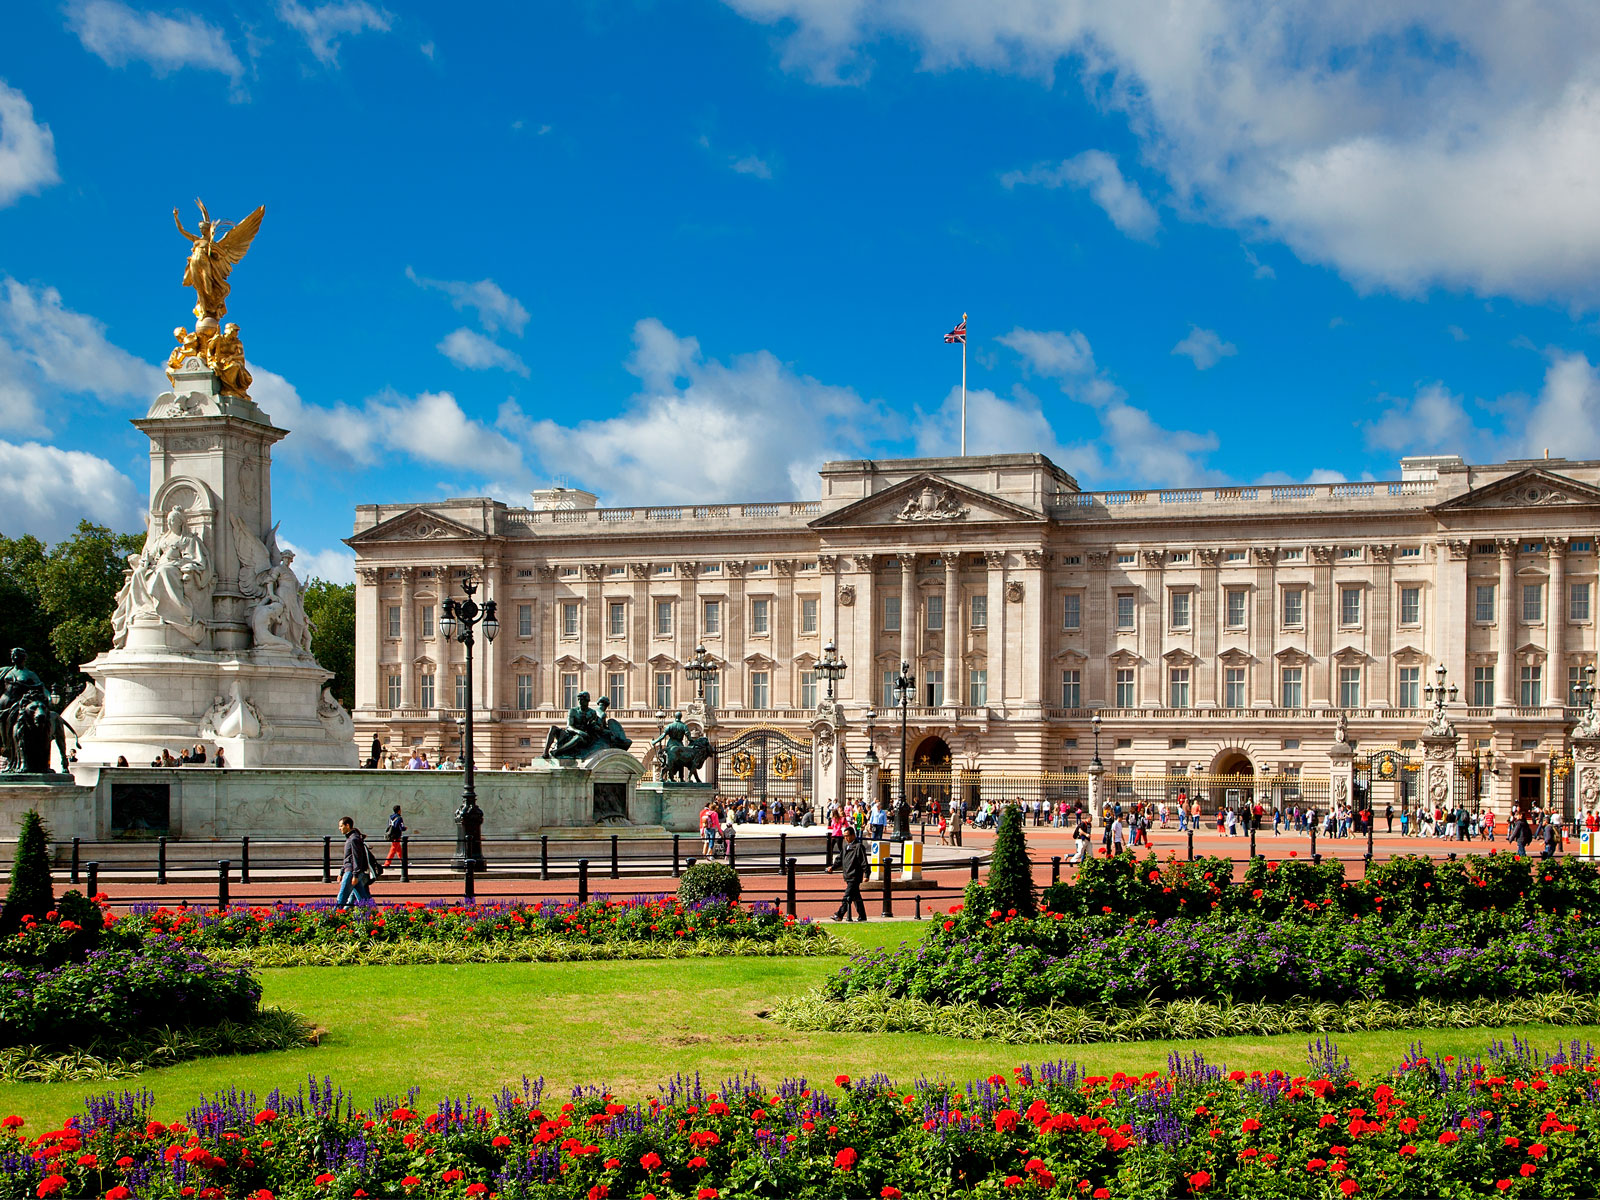 Buckingham Palace Once Had an On-Site Bar, But Royal Staffers Couldn't Behave Themselves